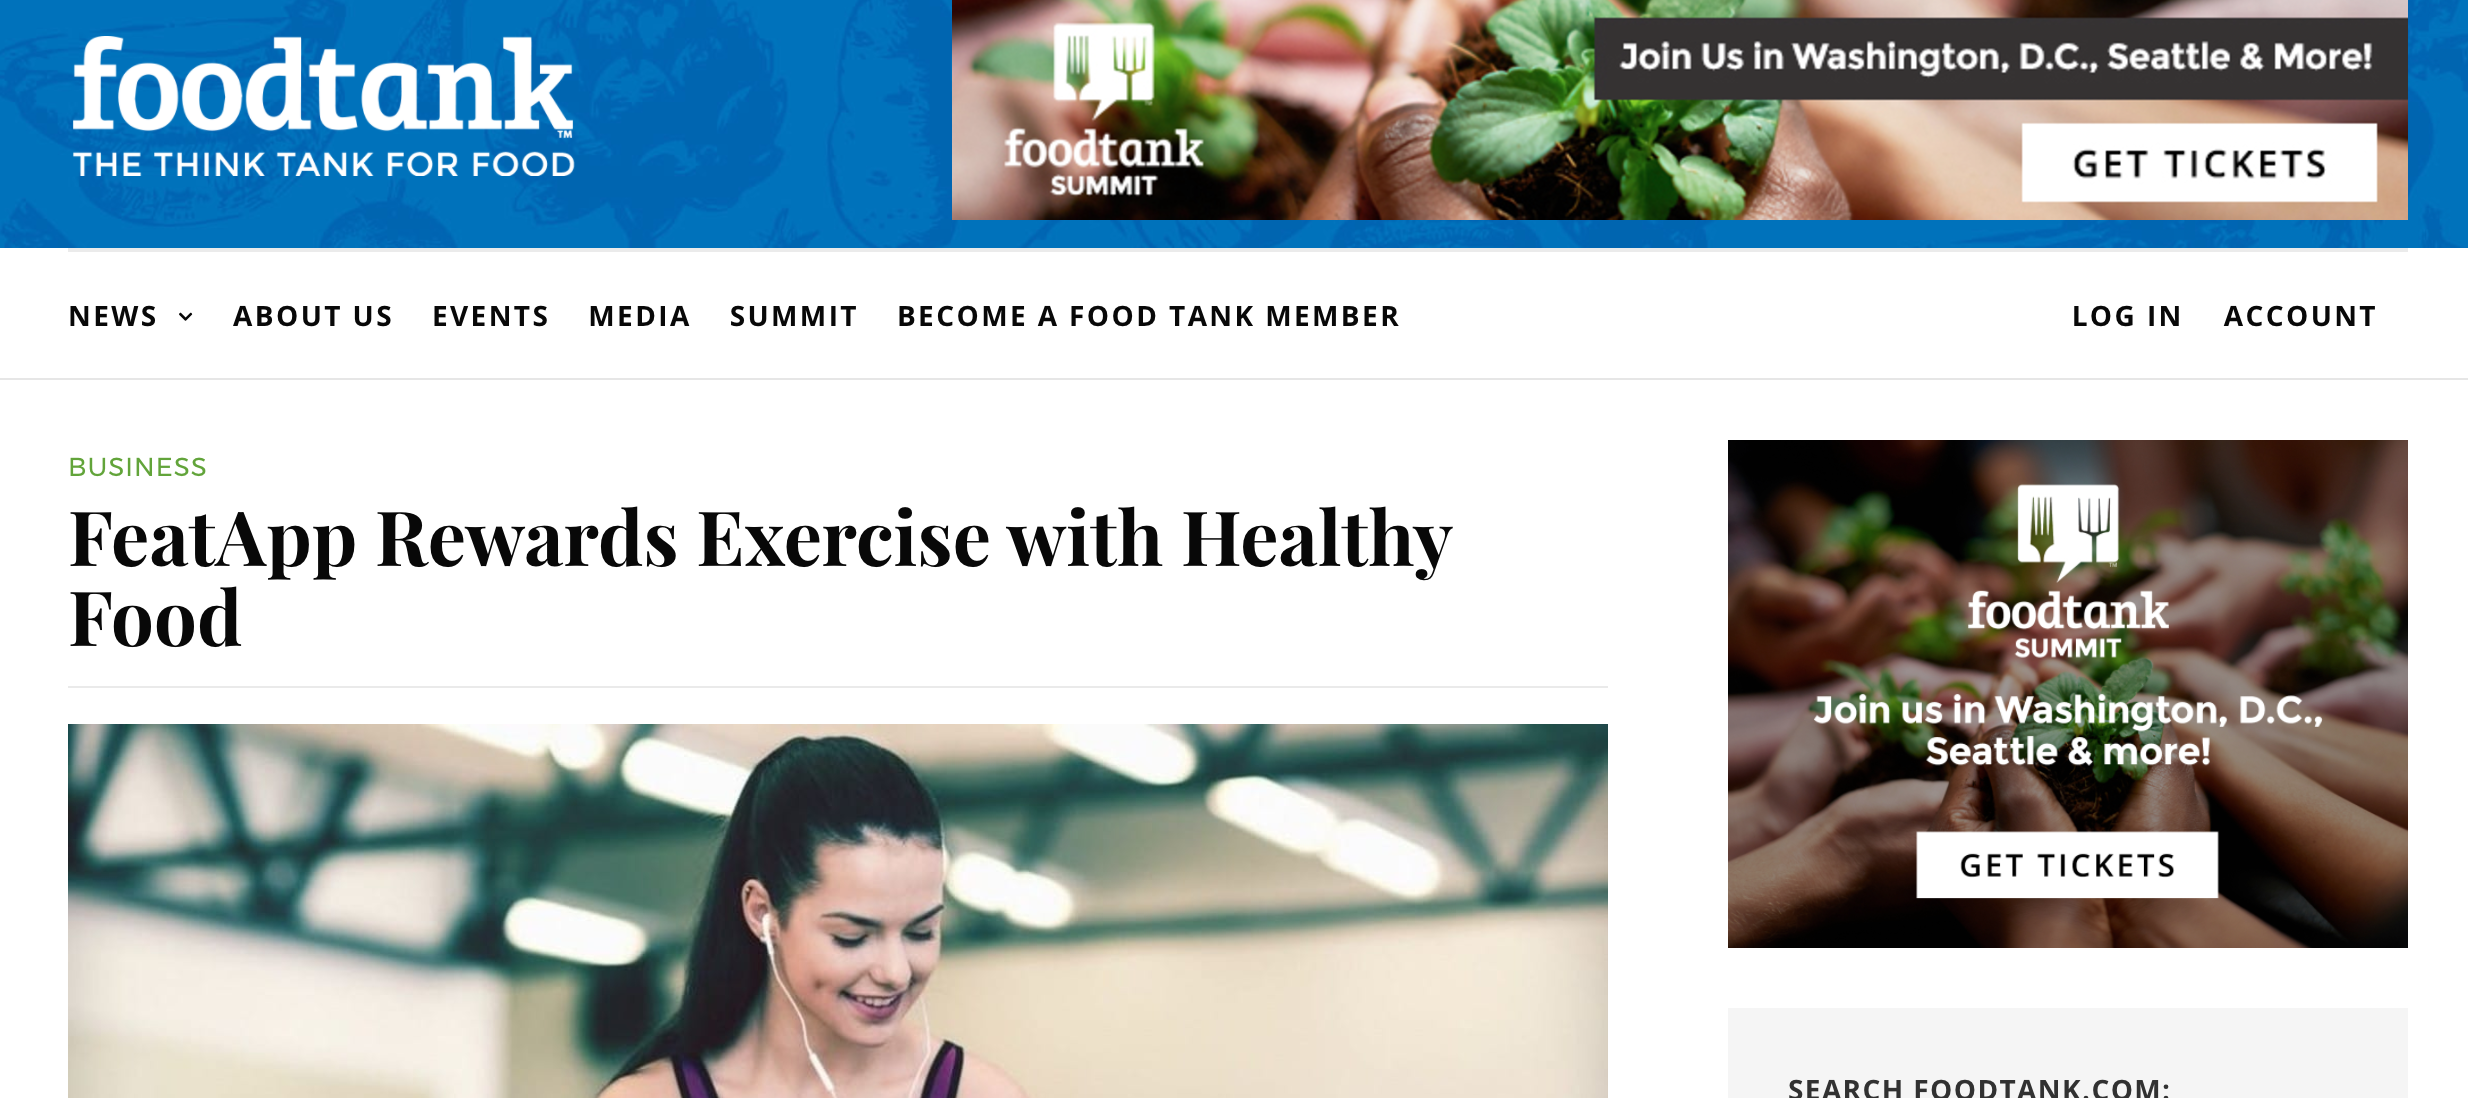 FeatApp Rewards Exercise with Healthy Food - Food Tank, January 2016